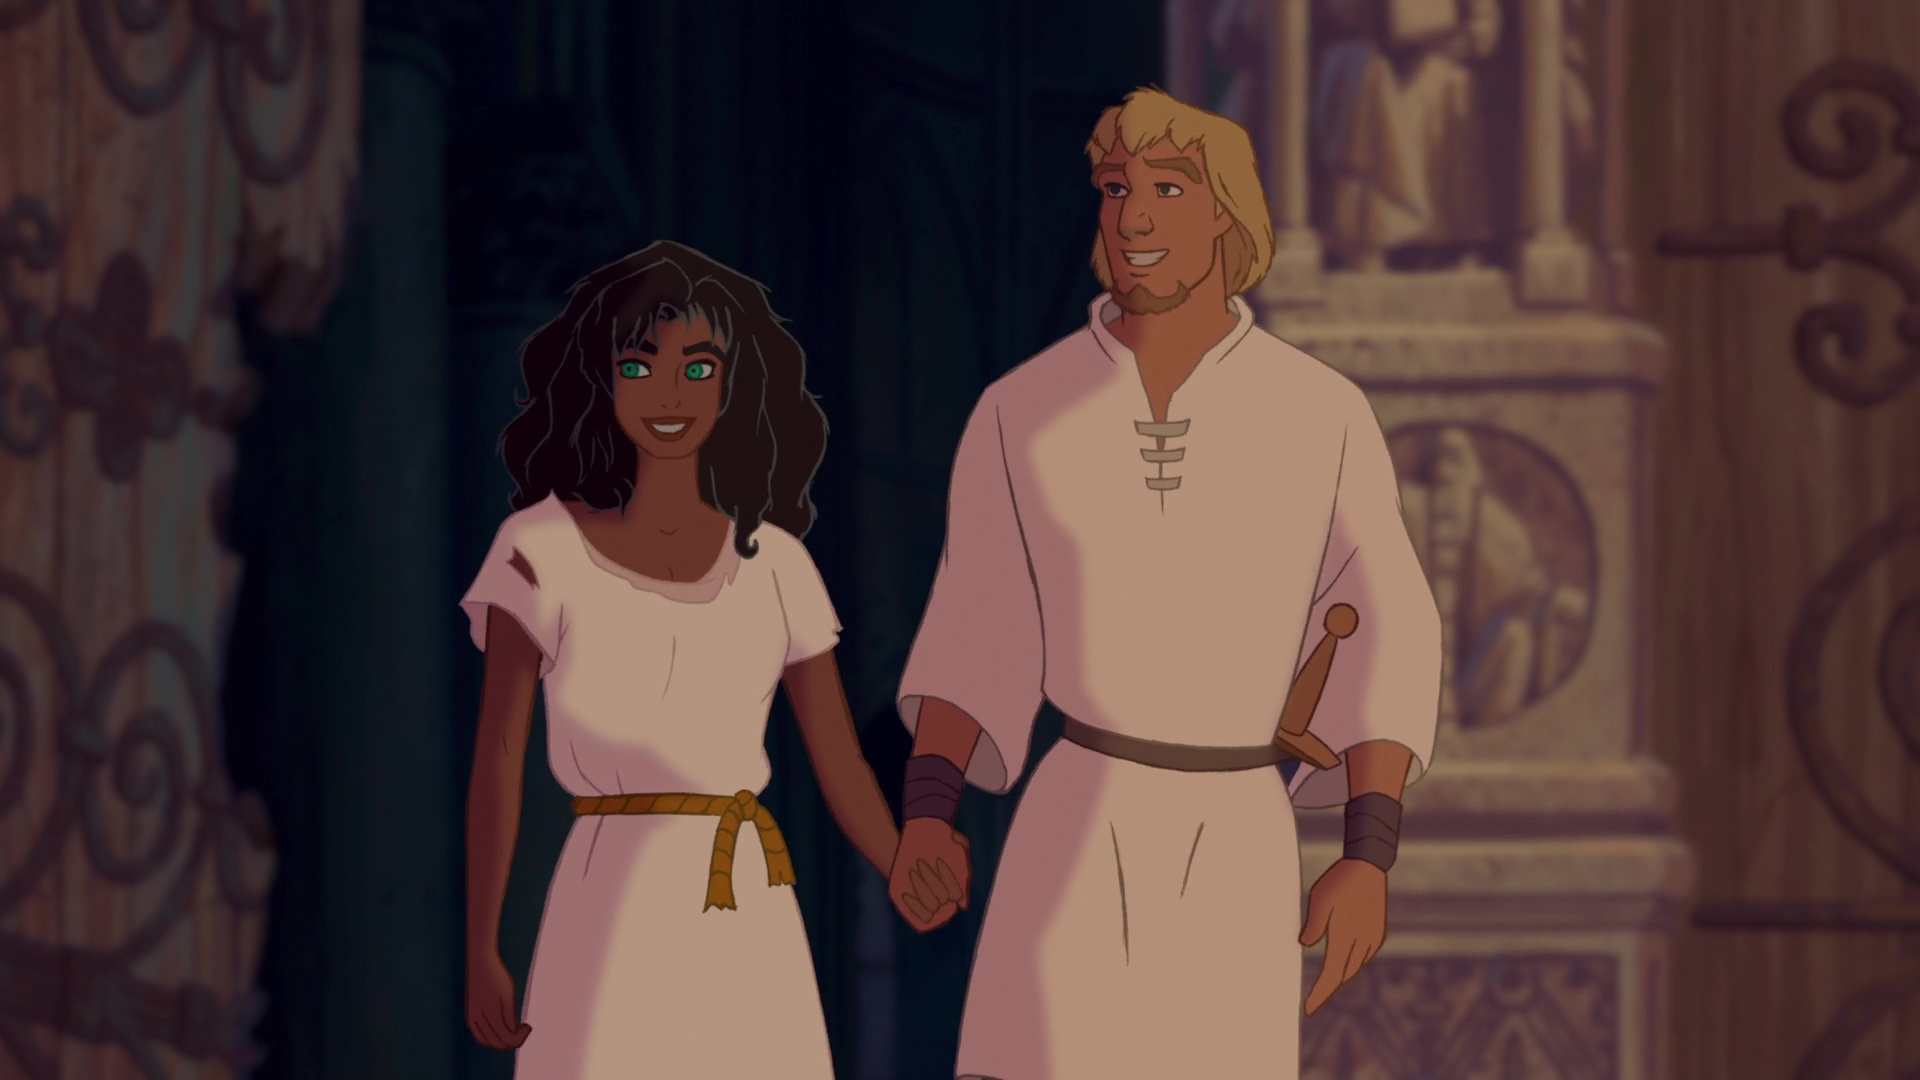 File:Esmerelda-and-Phoebus-the-hunchback-of-notre-dame-6584774-400-209.jpg